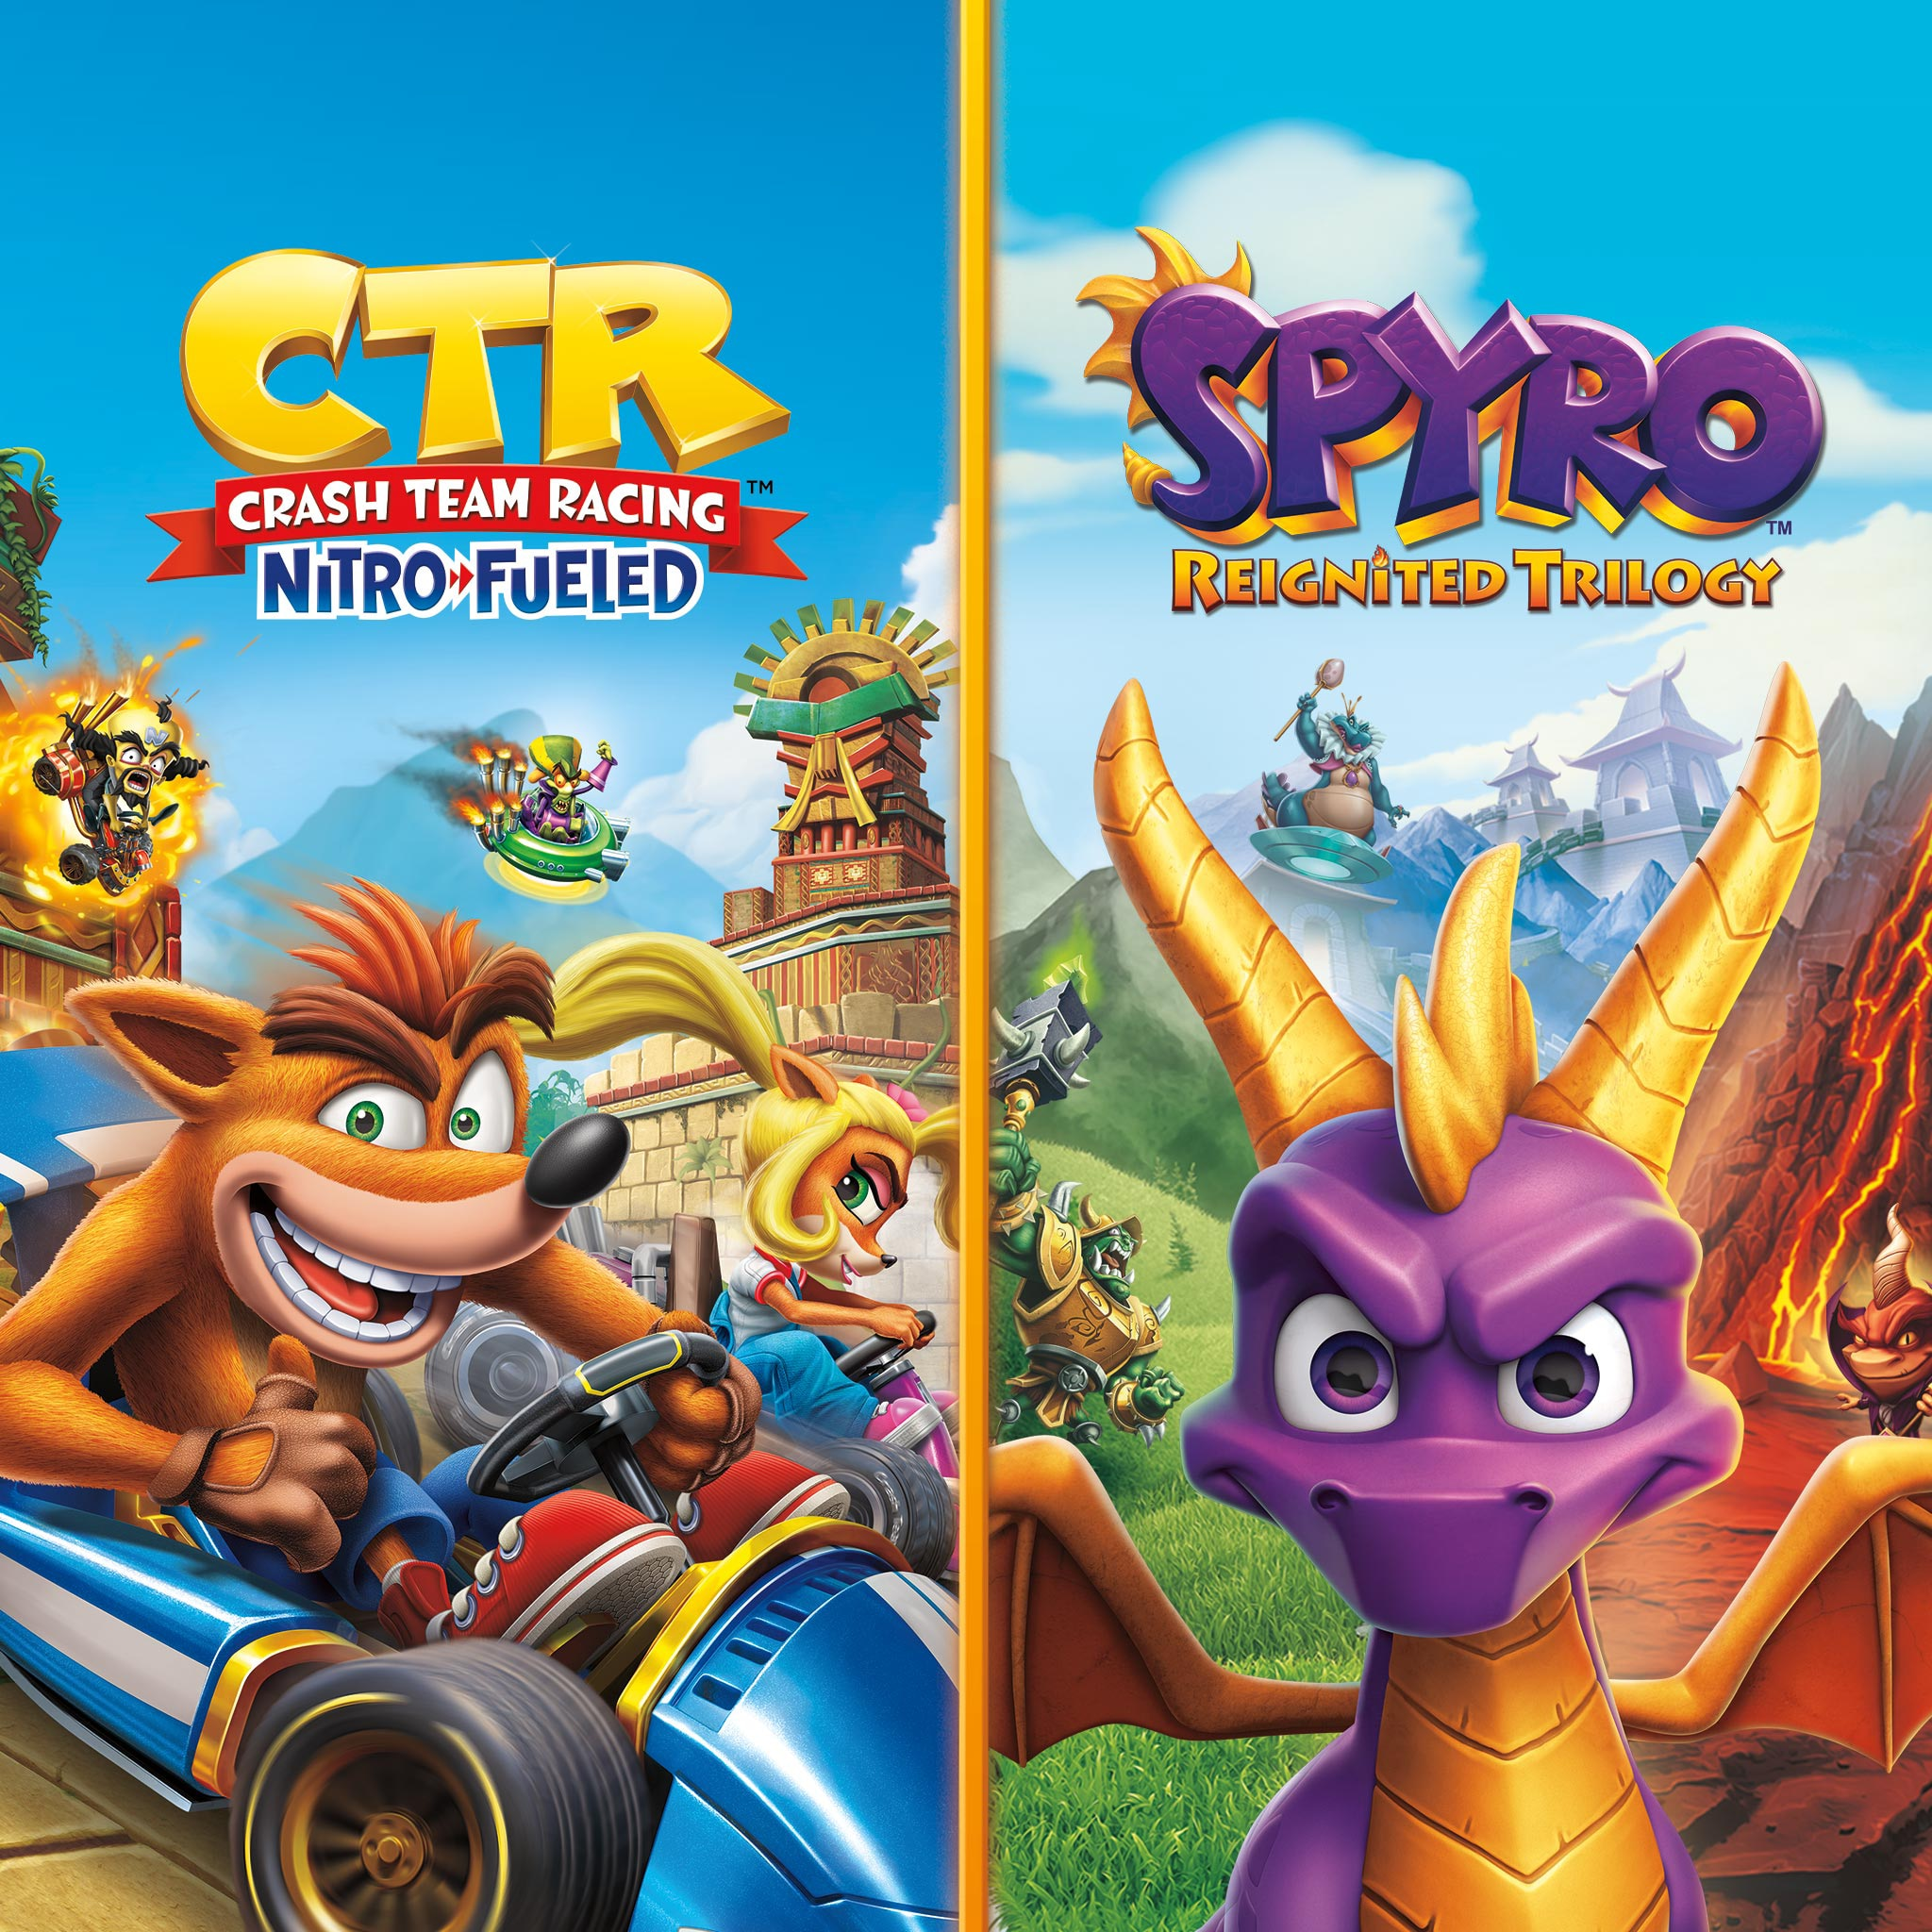 Crash™ Team Racing Nitro-Fueled + Spyro™-Spielepaket